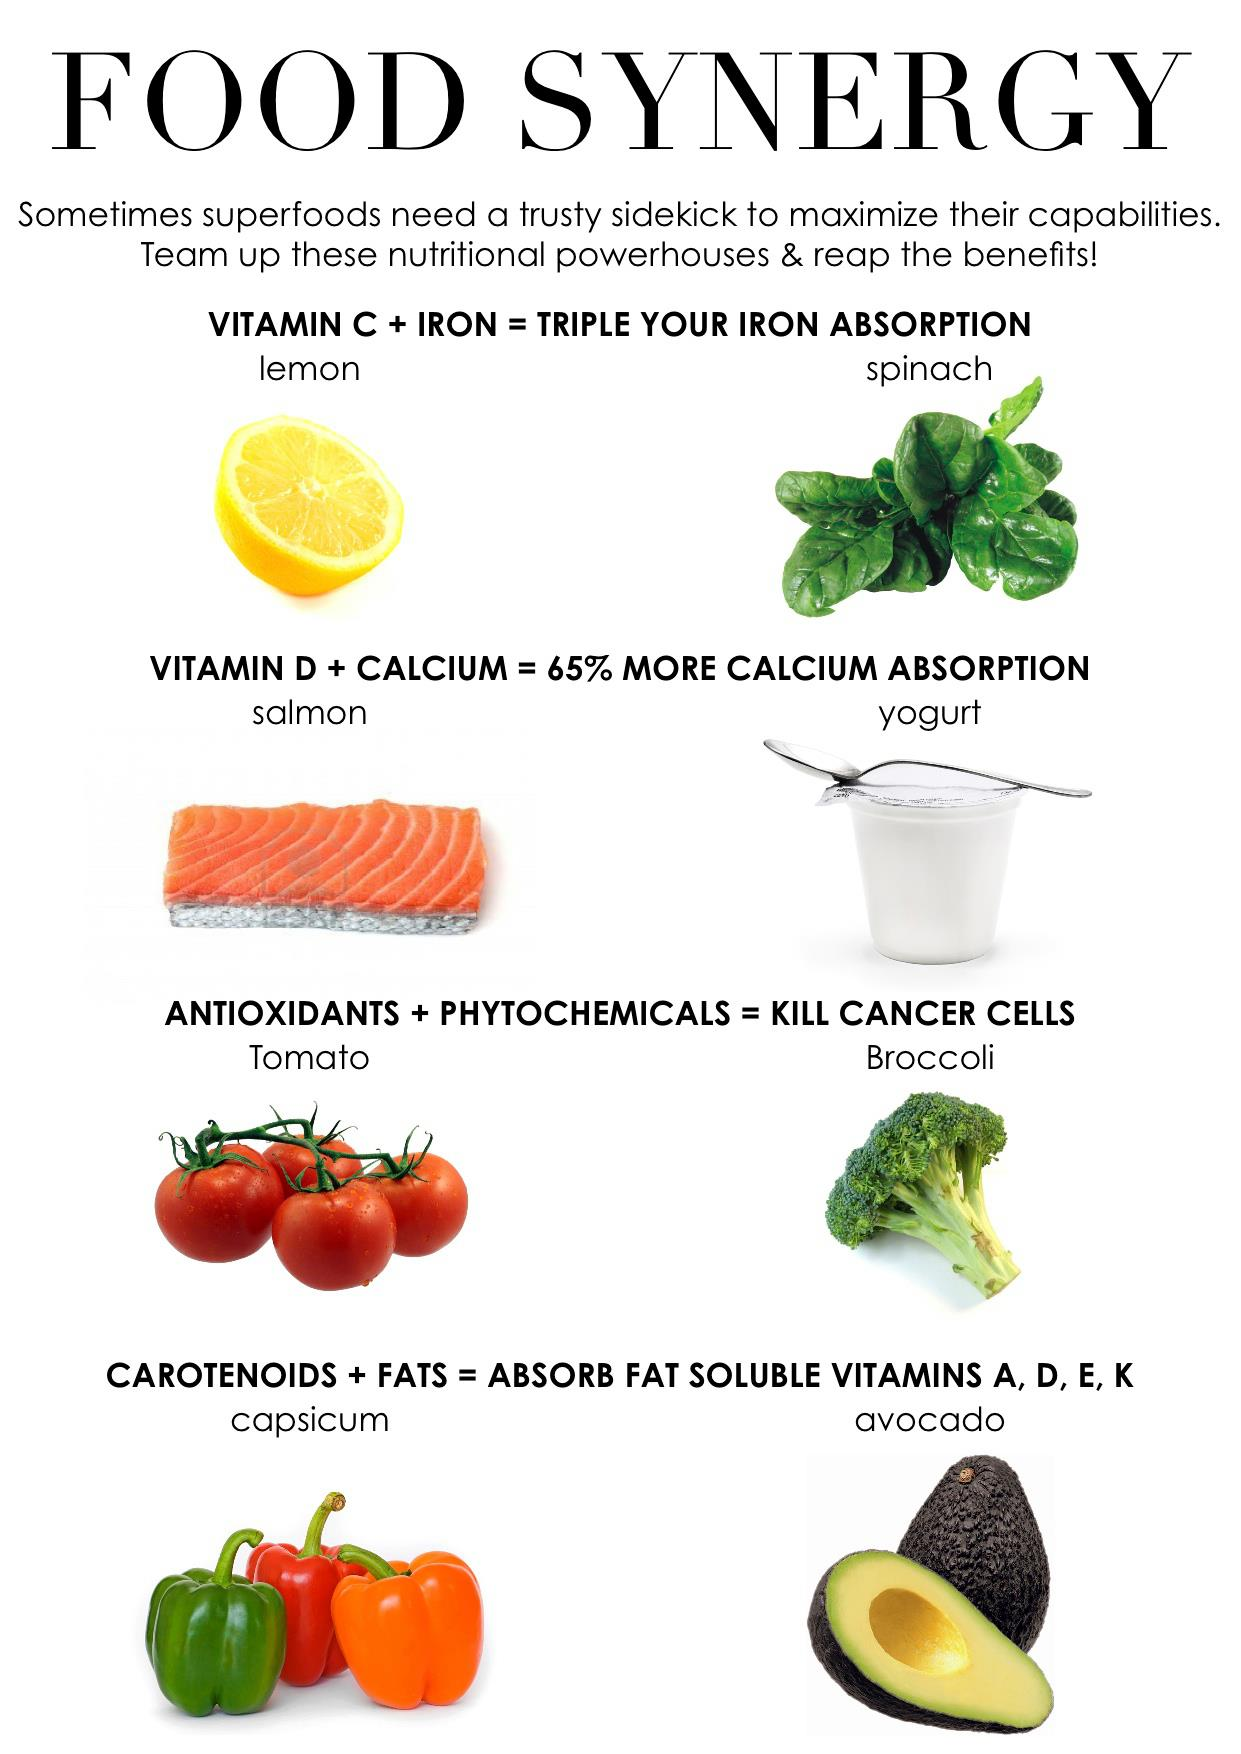 2013-05-27-5-ways-to-improve-nutrient-absorption